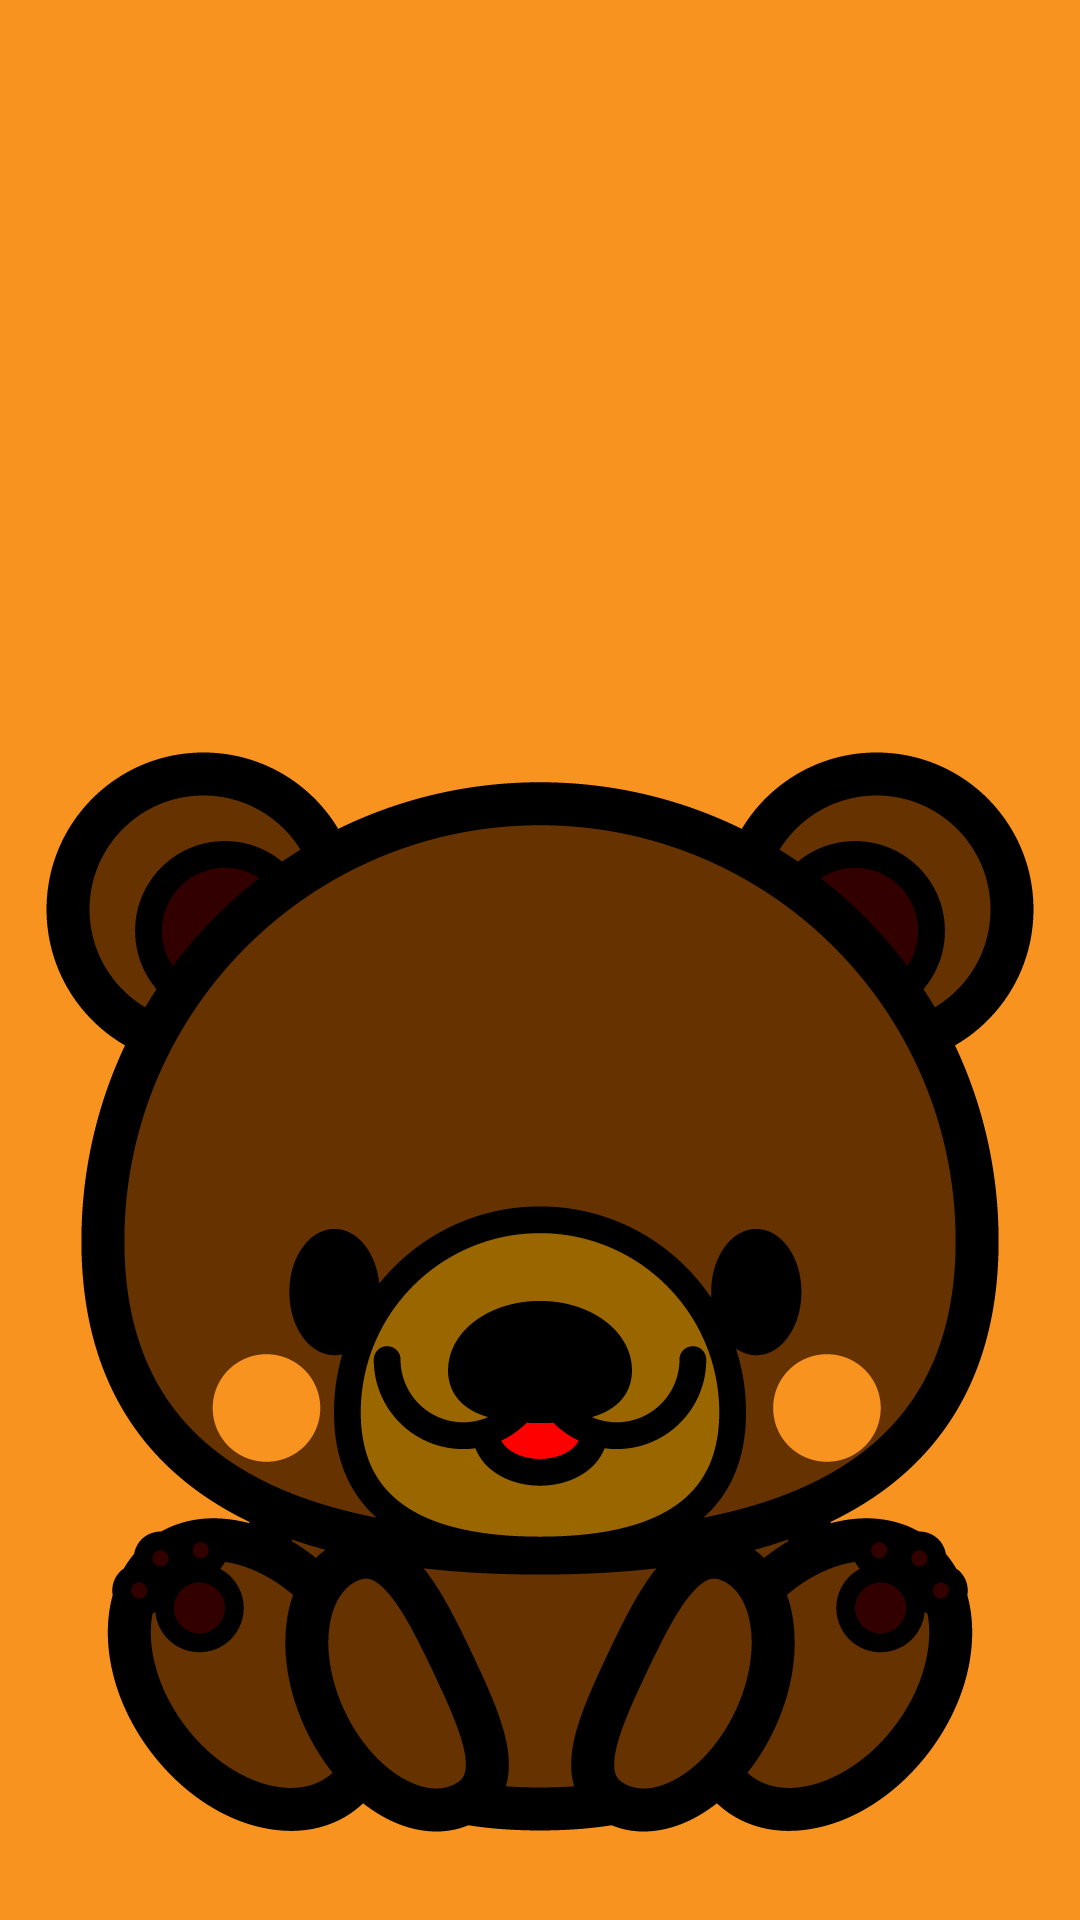 wallpaper3_sitbear-orange-iphone